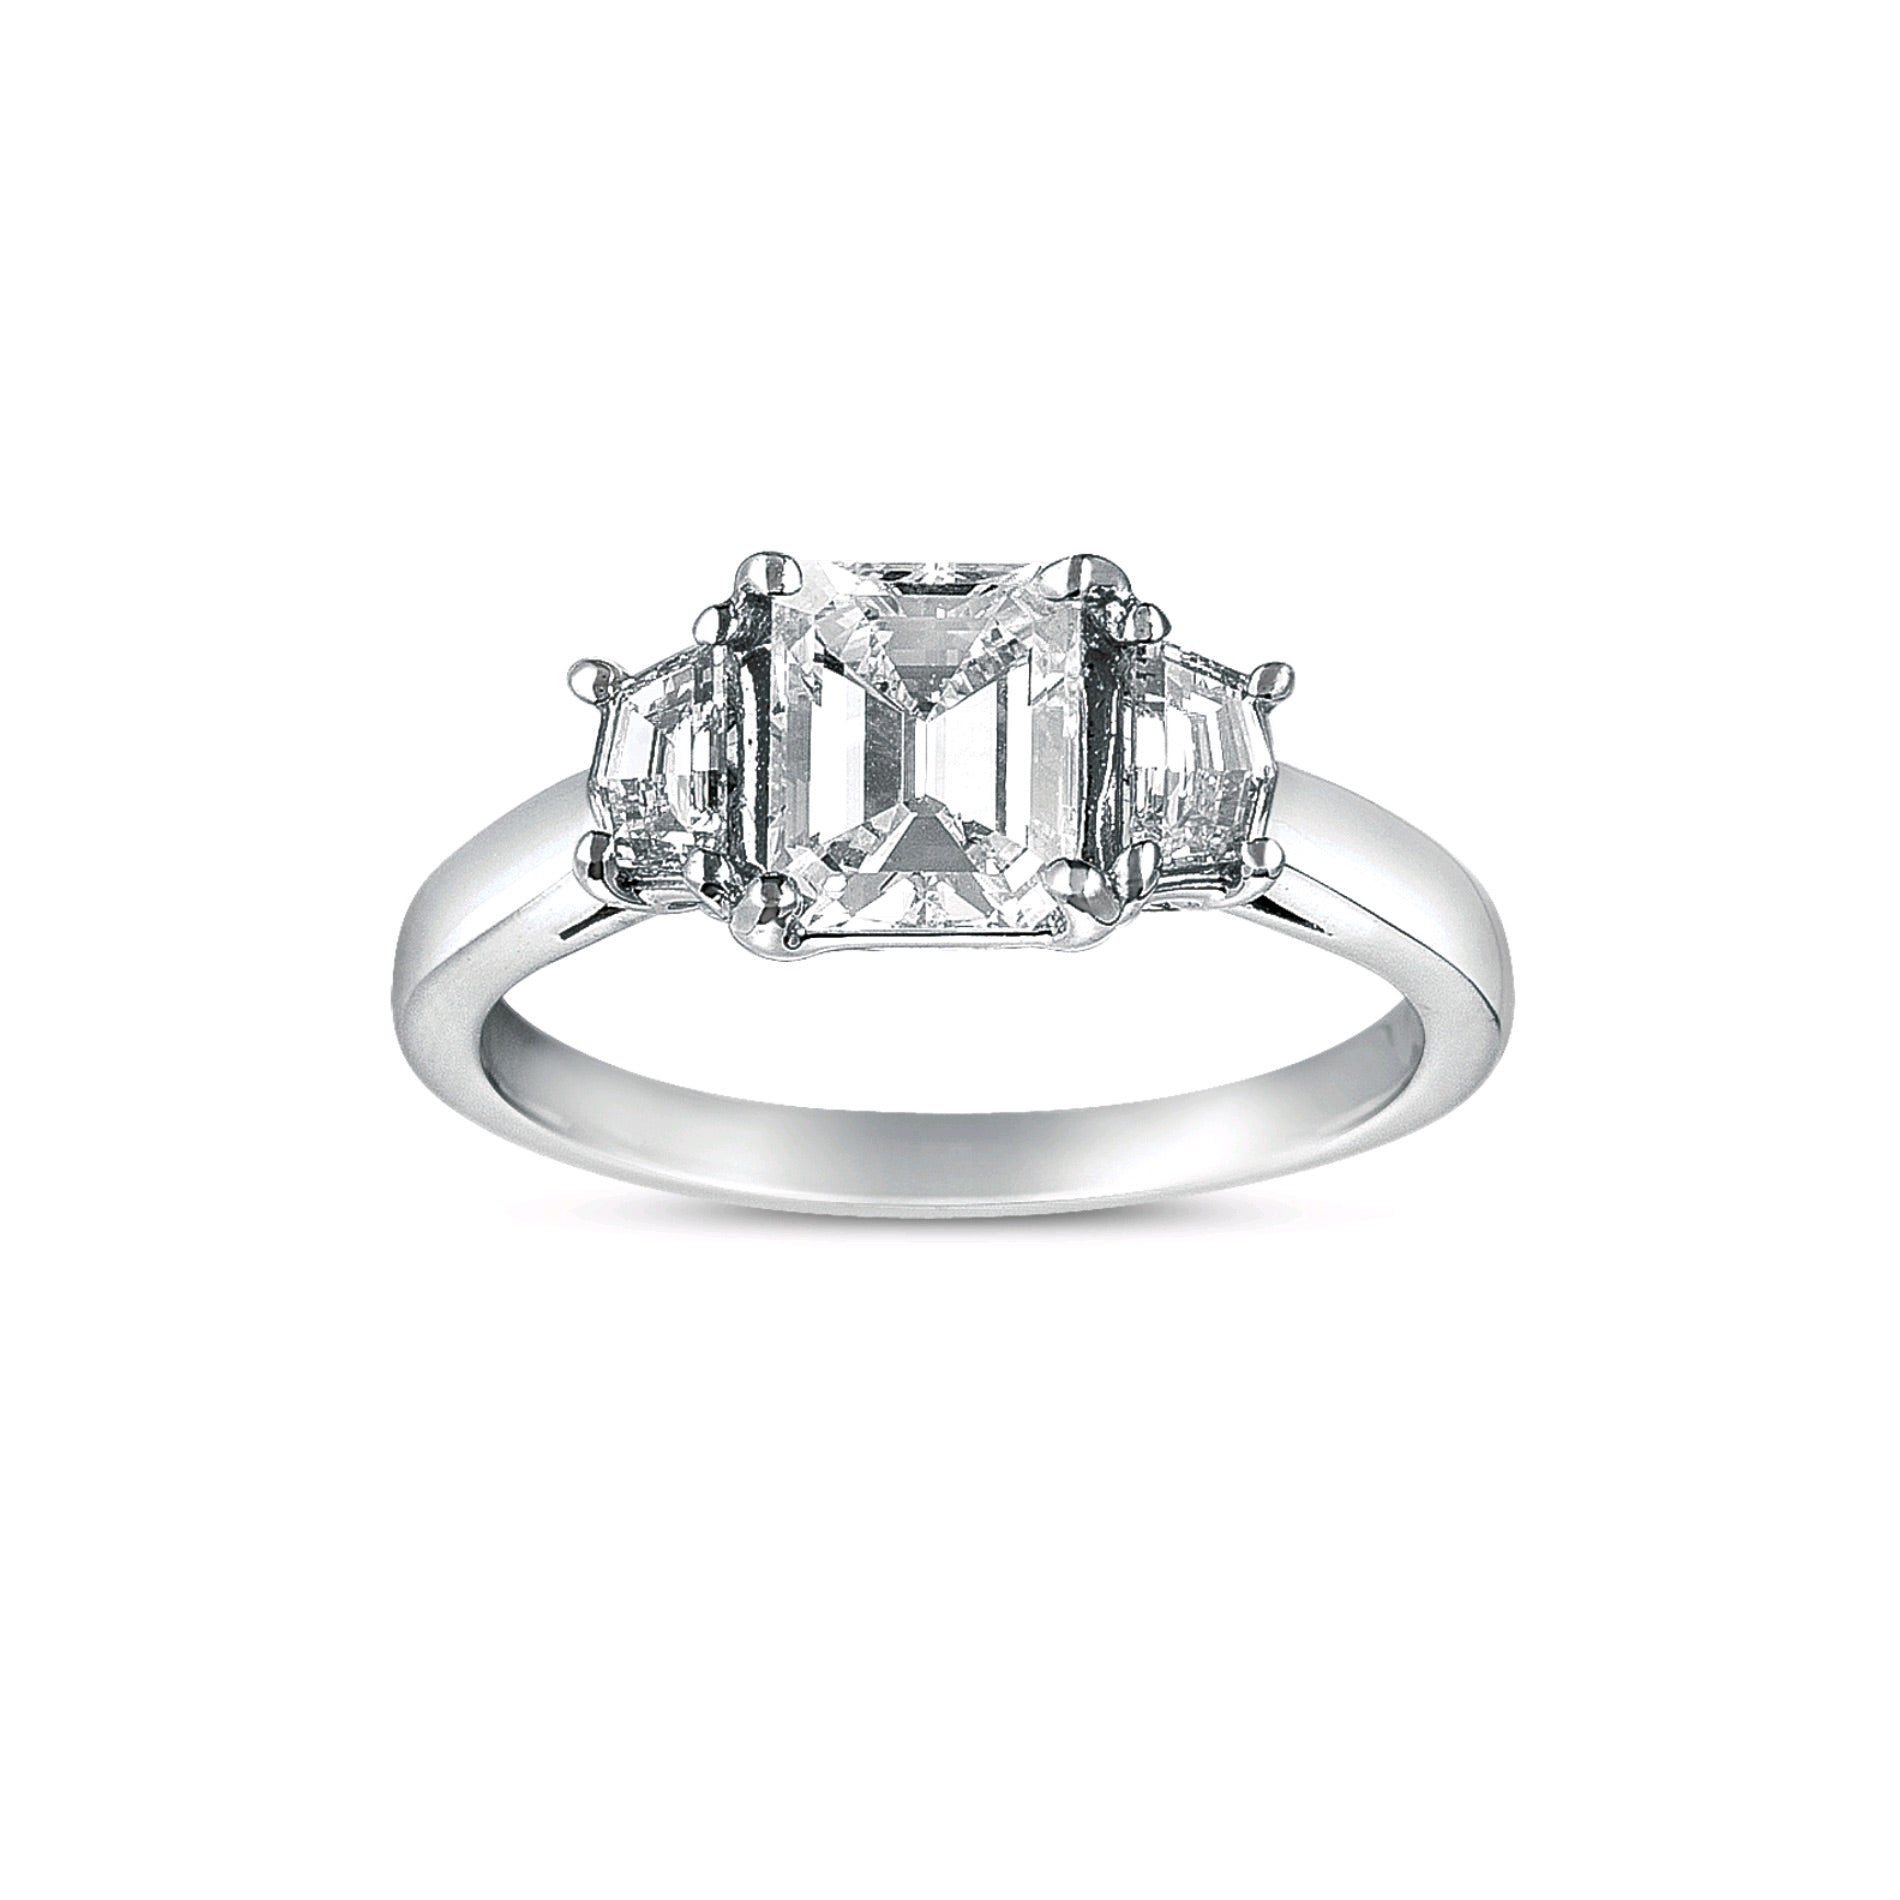 Emerald Cut Three Stone Diamond Ring, 18K White Gold